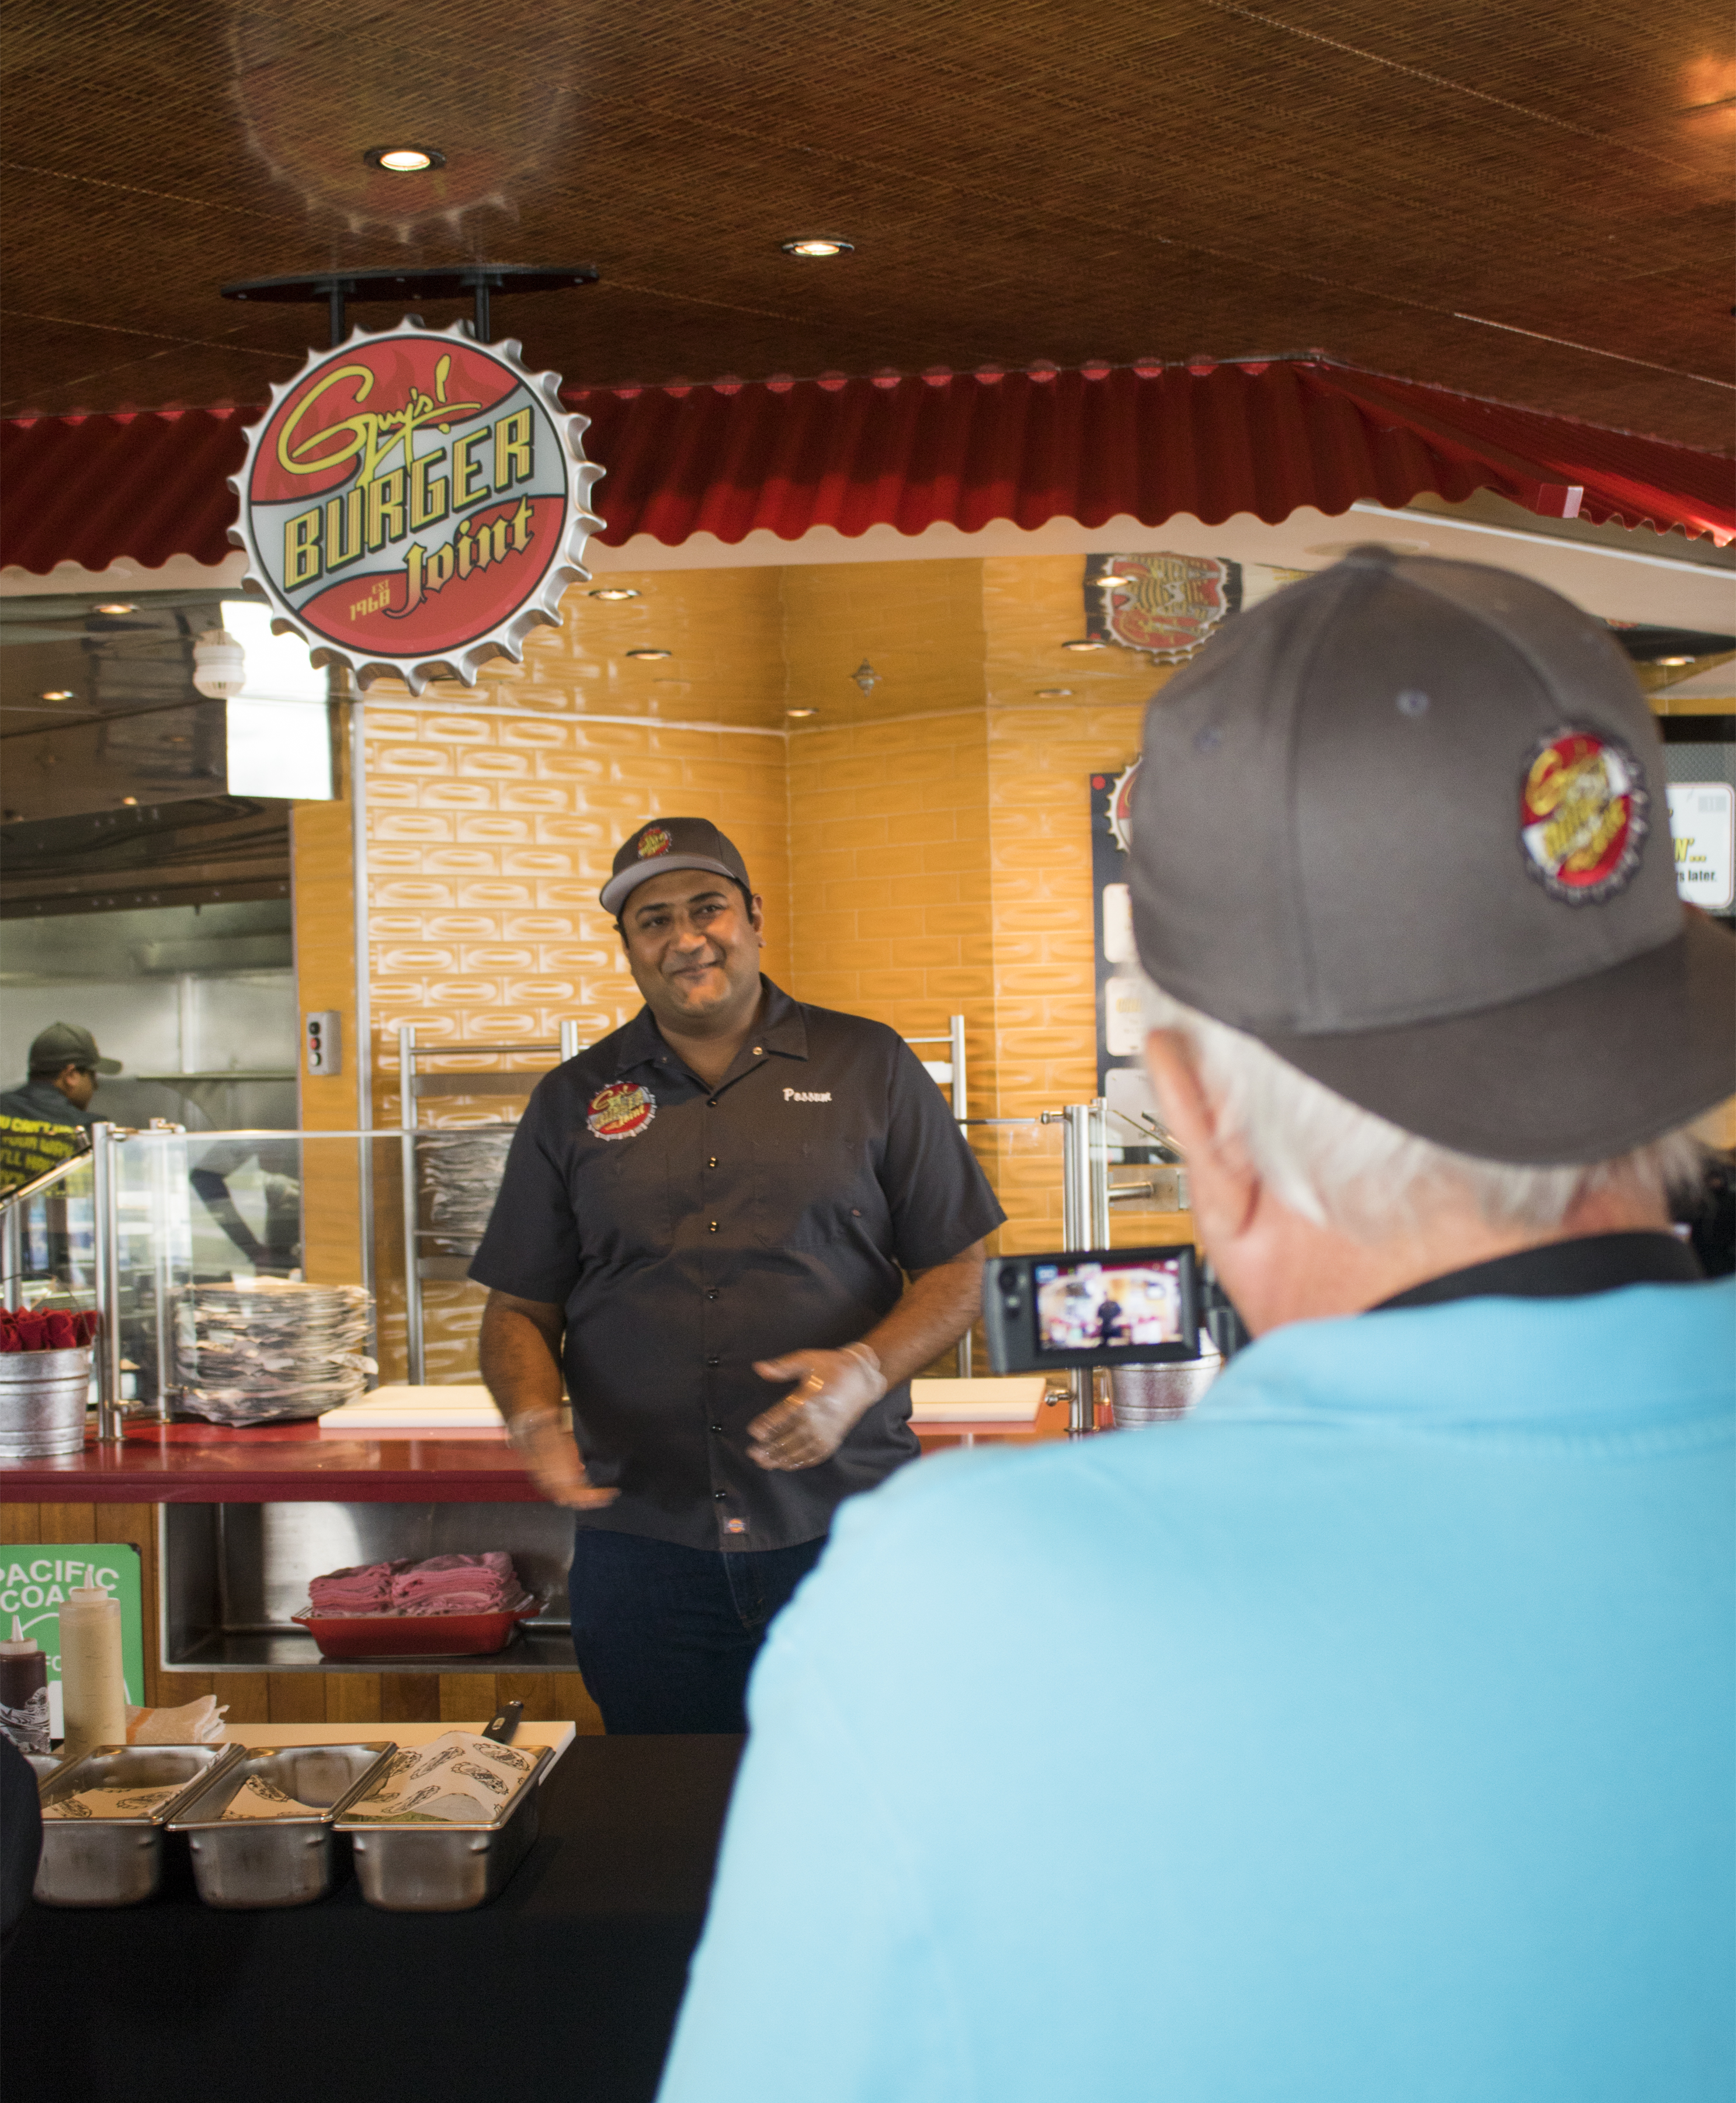 Carnival Cruise Line Celebrates National Hamburger Day by Creating Largest Hamburger at Sea, Hosting Burger-Making Workshop for Local Media in Port Canaveral